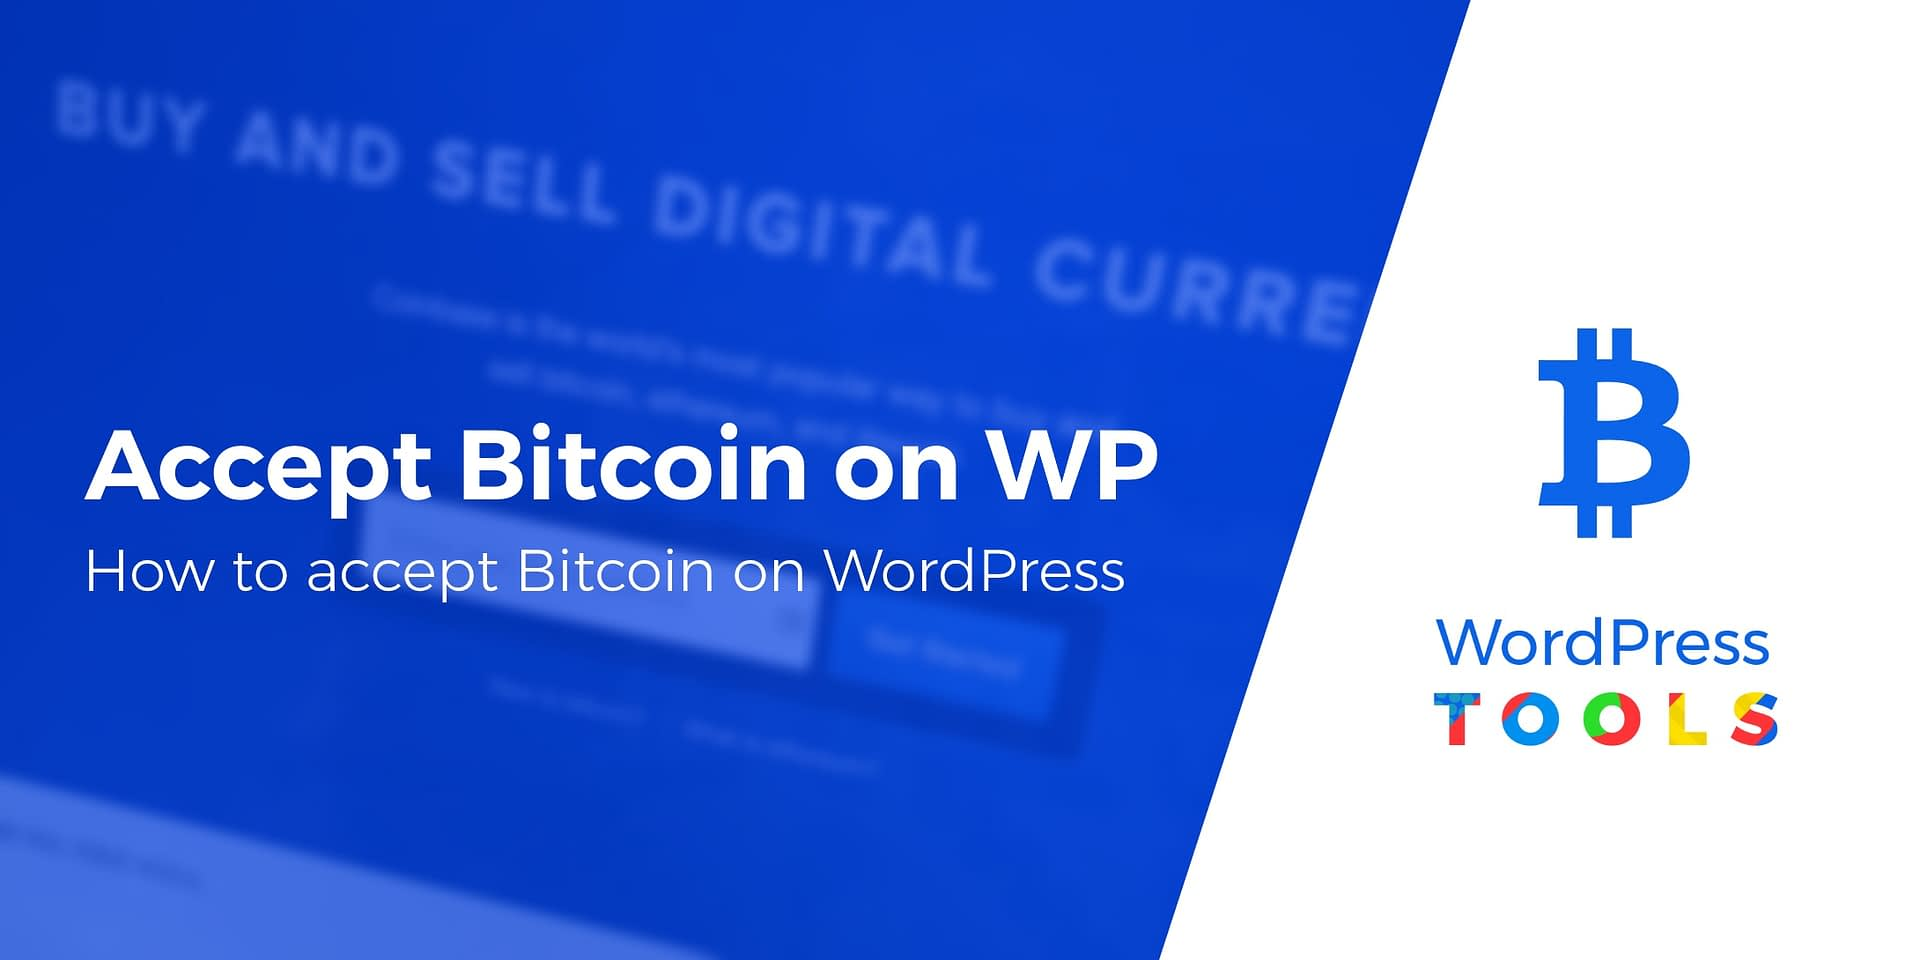 How to Accept Bitcoin on WordPress - Your Step-by-Step Guide